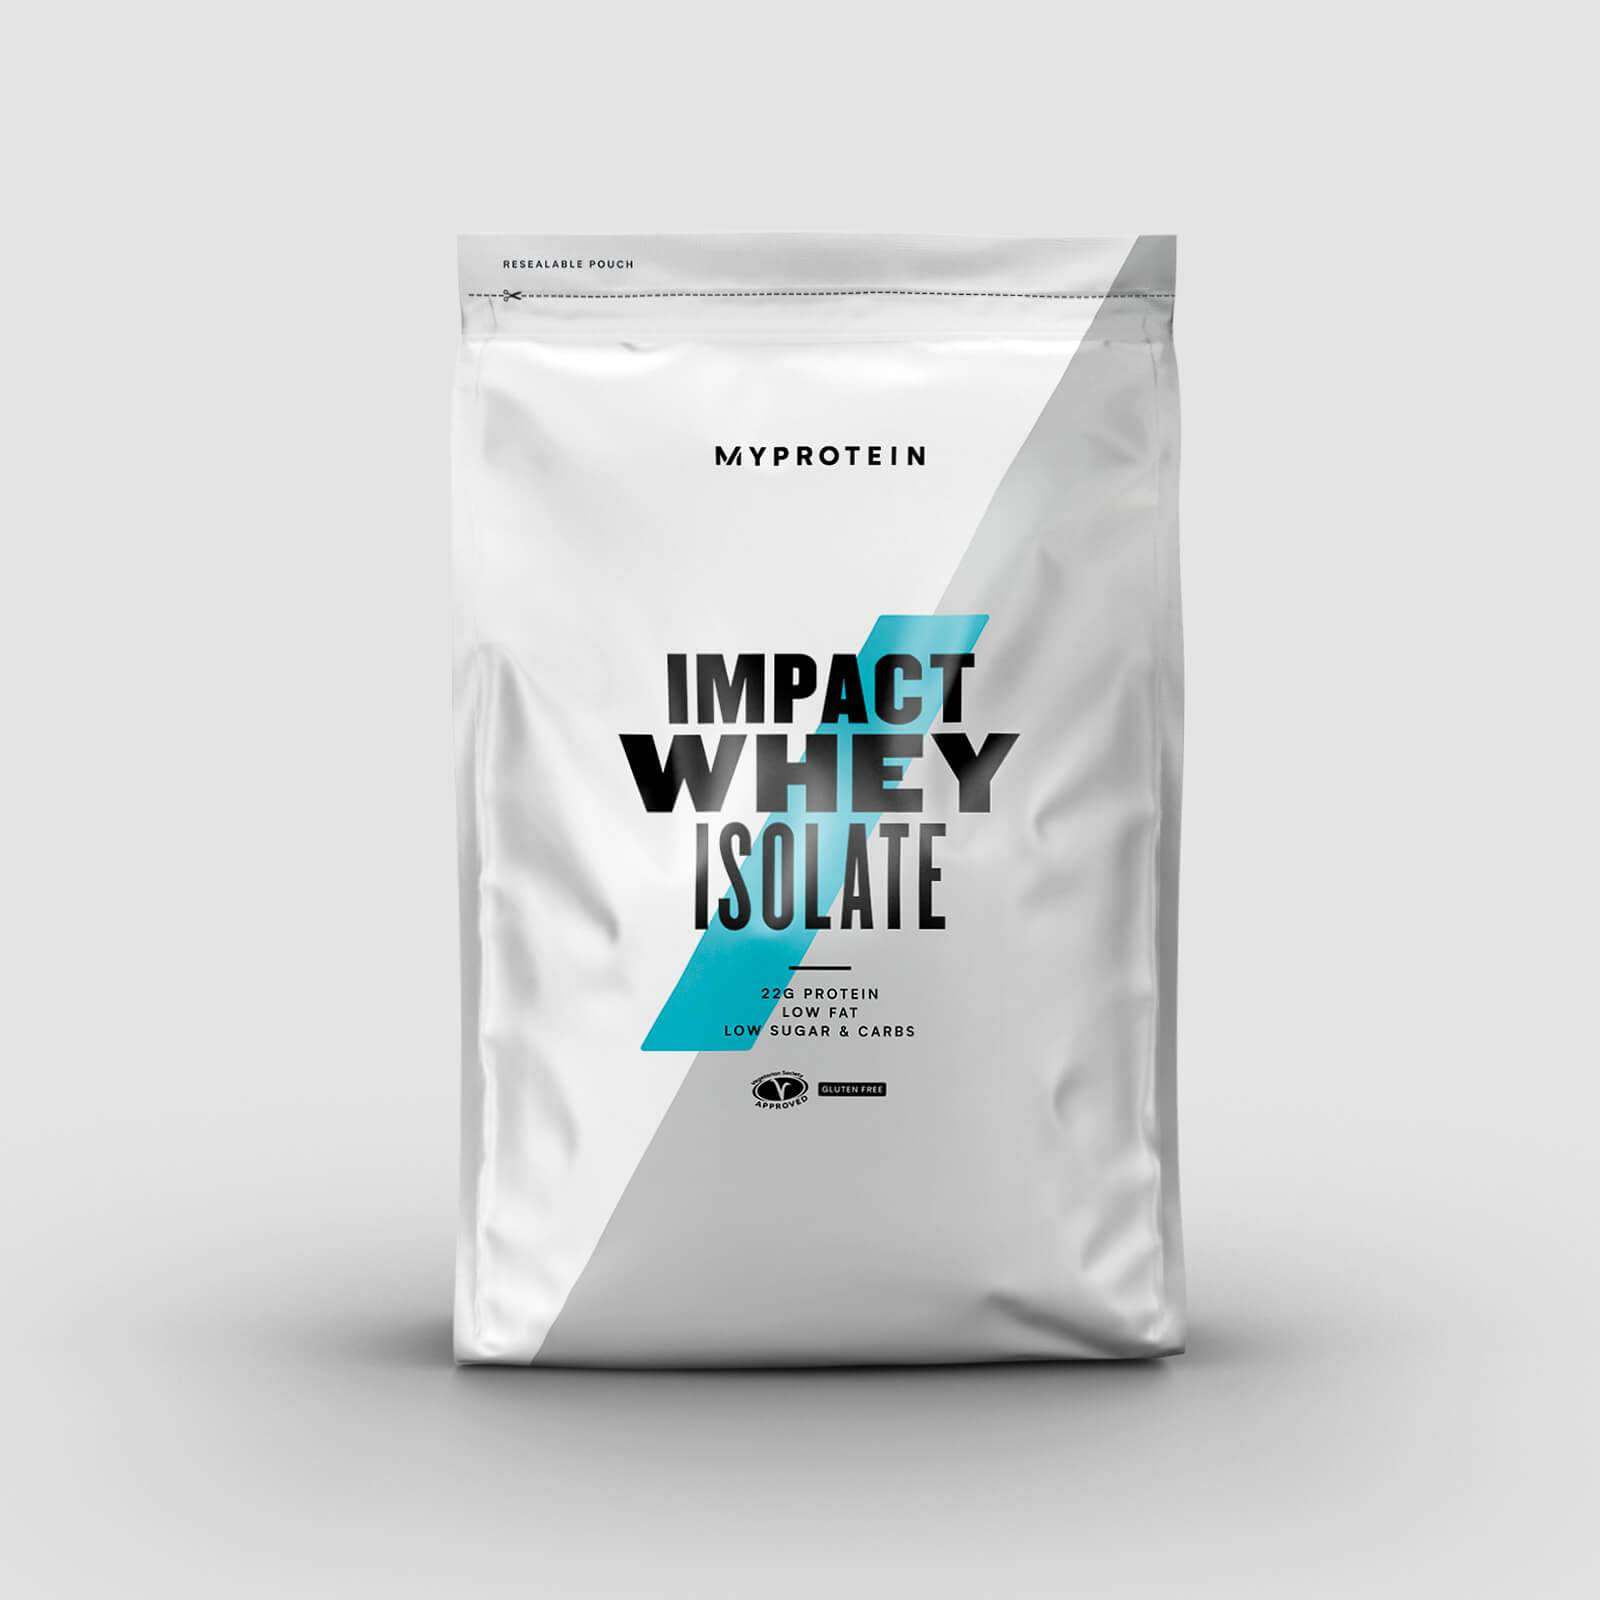 Myprotein Impact Whey Isolate - 5kg - Myrtille